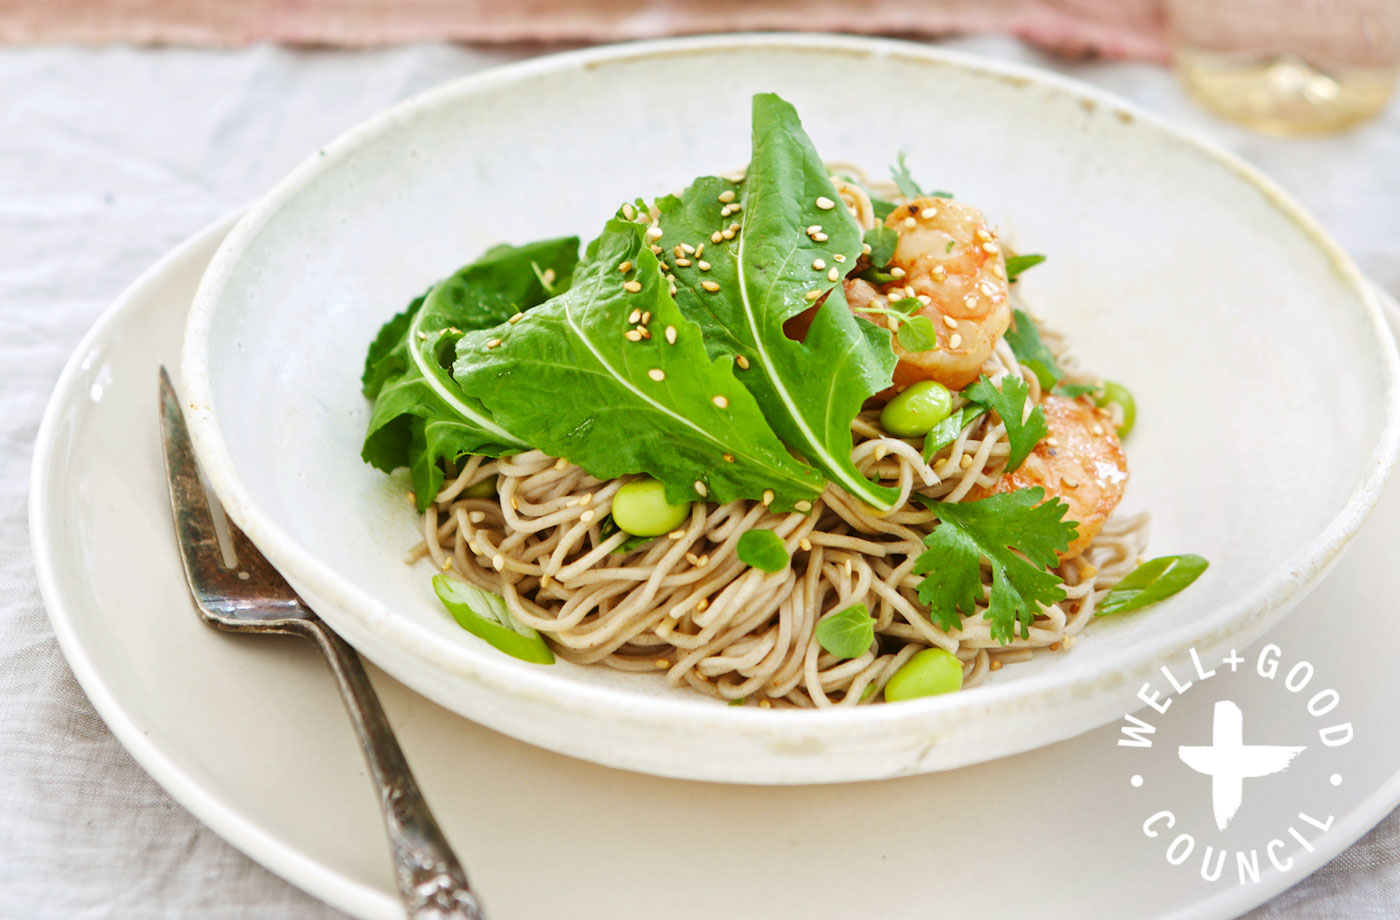 Thumbnail for This Protein-Packed Spicy Noodle Salad Tastes Even Better as Leftovers